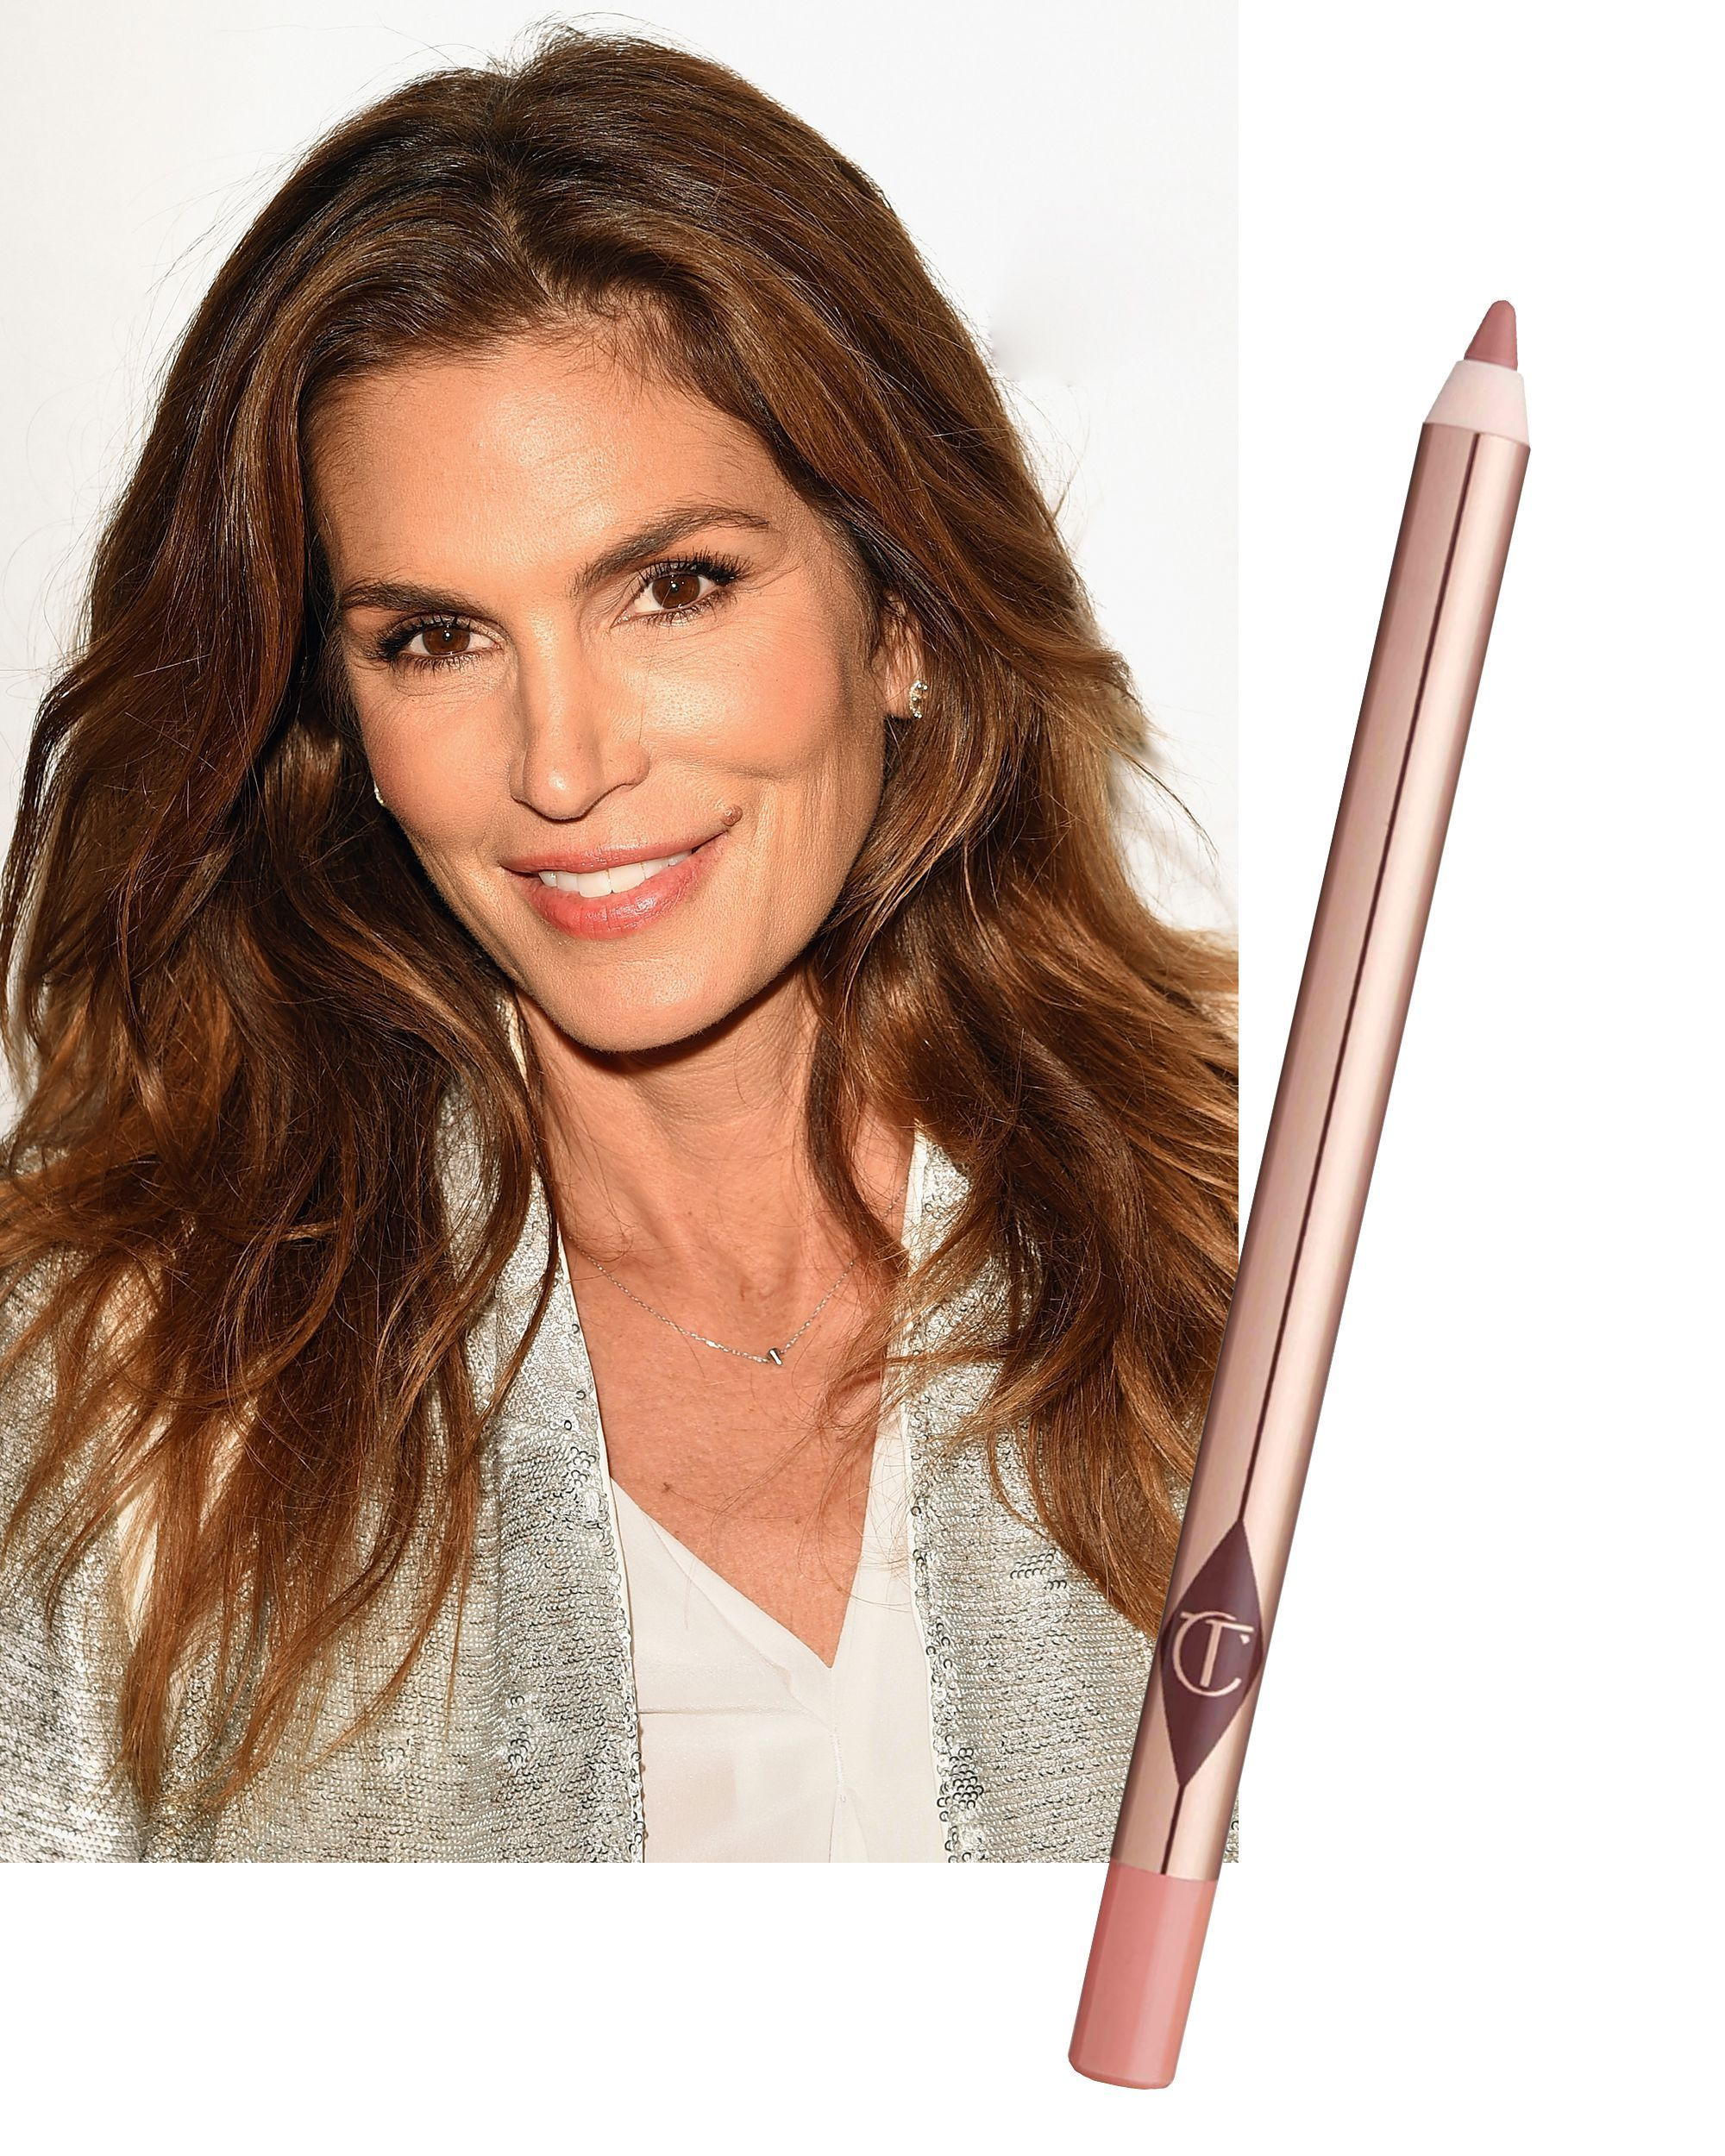 Perfect Cindy Crawford Makeup Book And Description in 2020